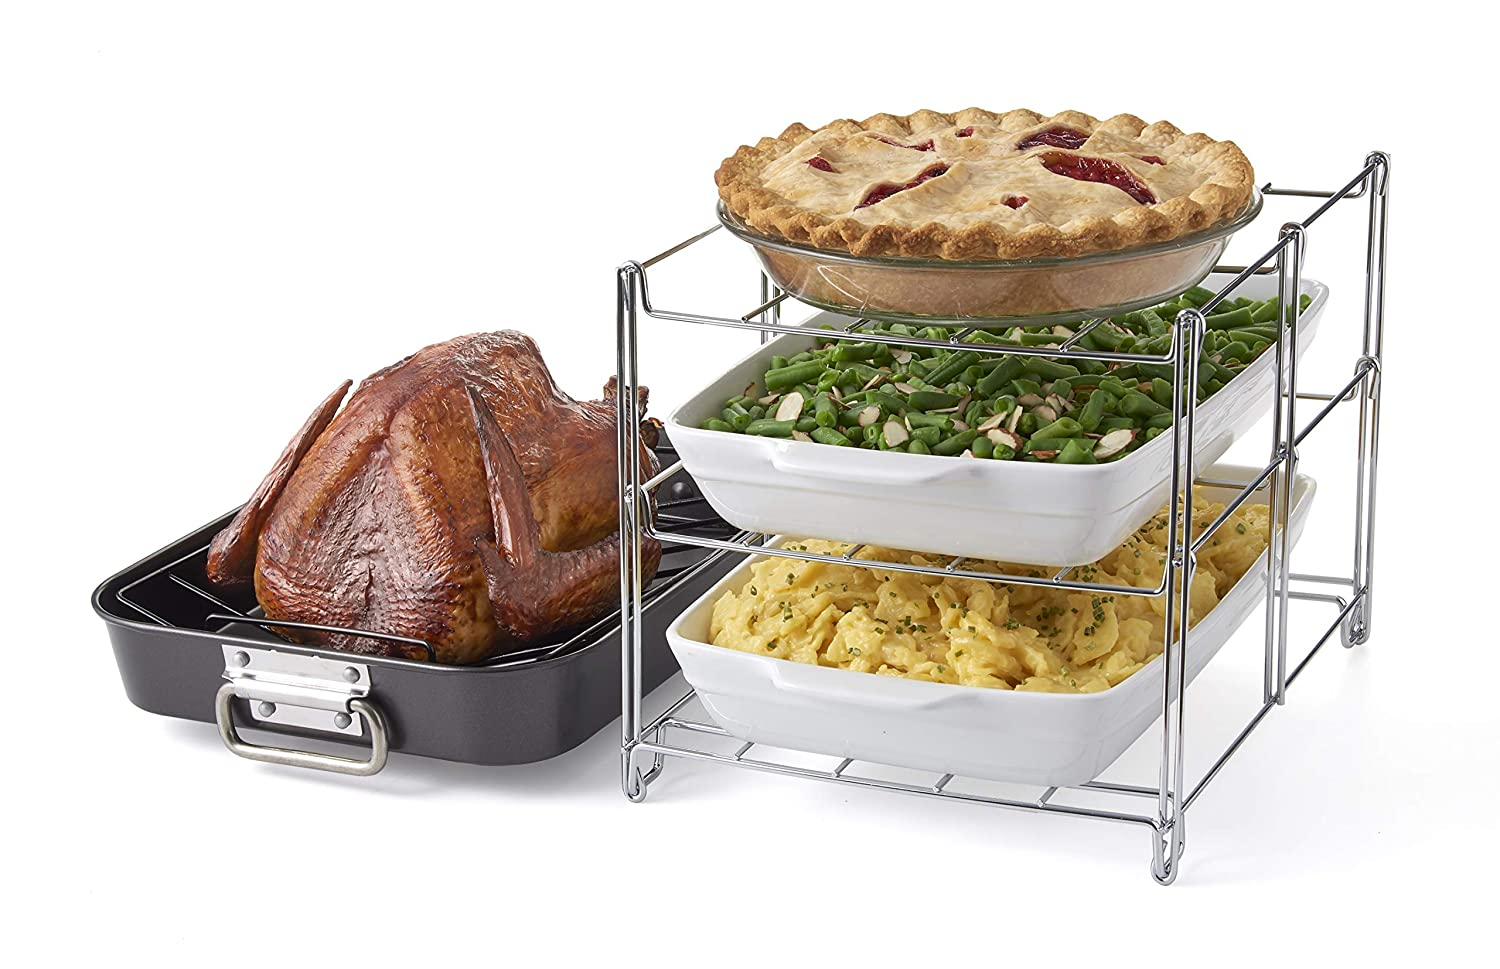 Betty Crocker Oven Insert with Large Non-Stick. 3-Tier Baking Rack and Roasting Pan Included, Charcoal and Chrome